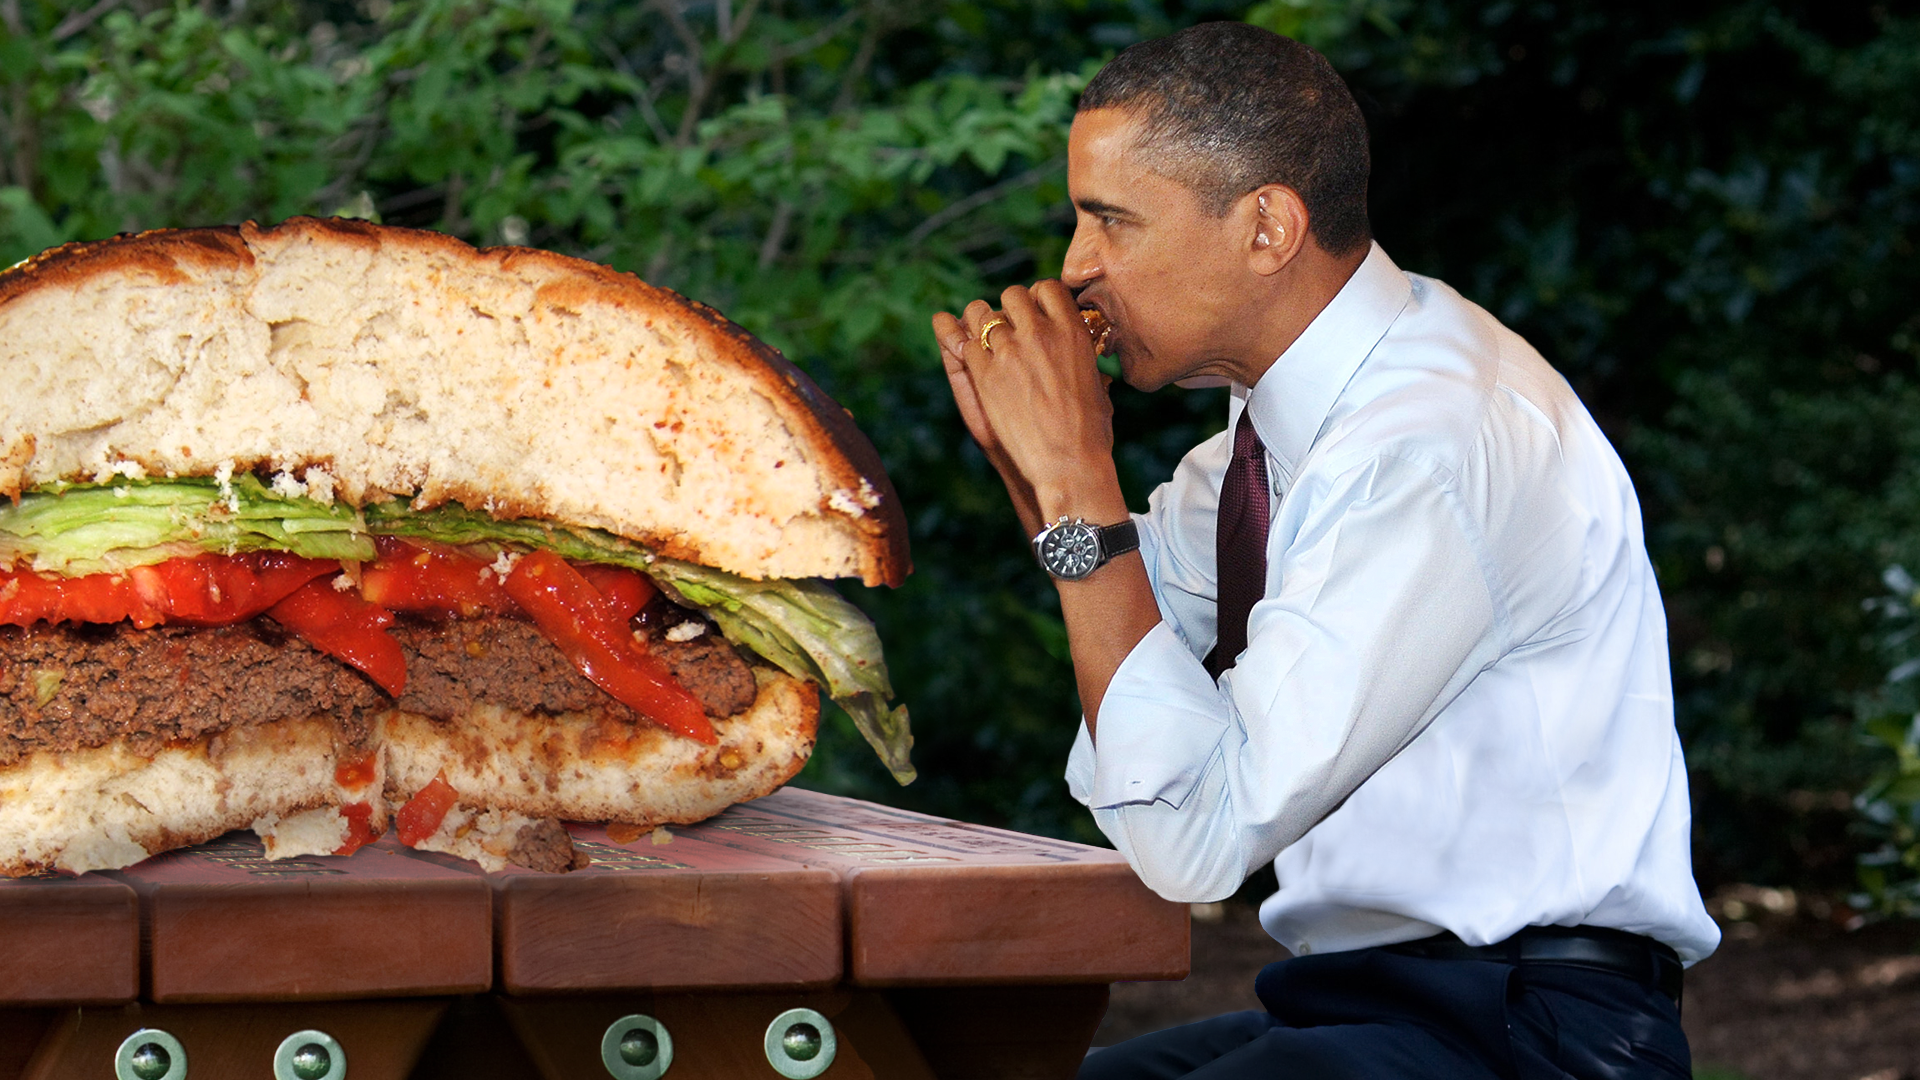 FF_ObamaHamburger_REV.png